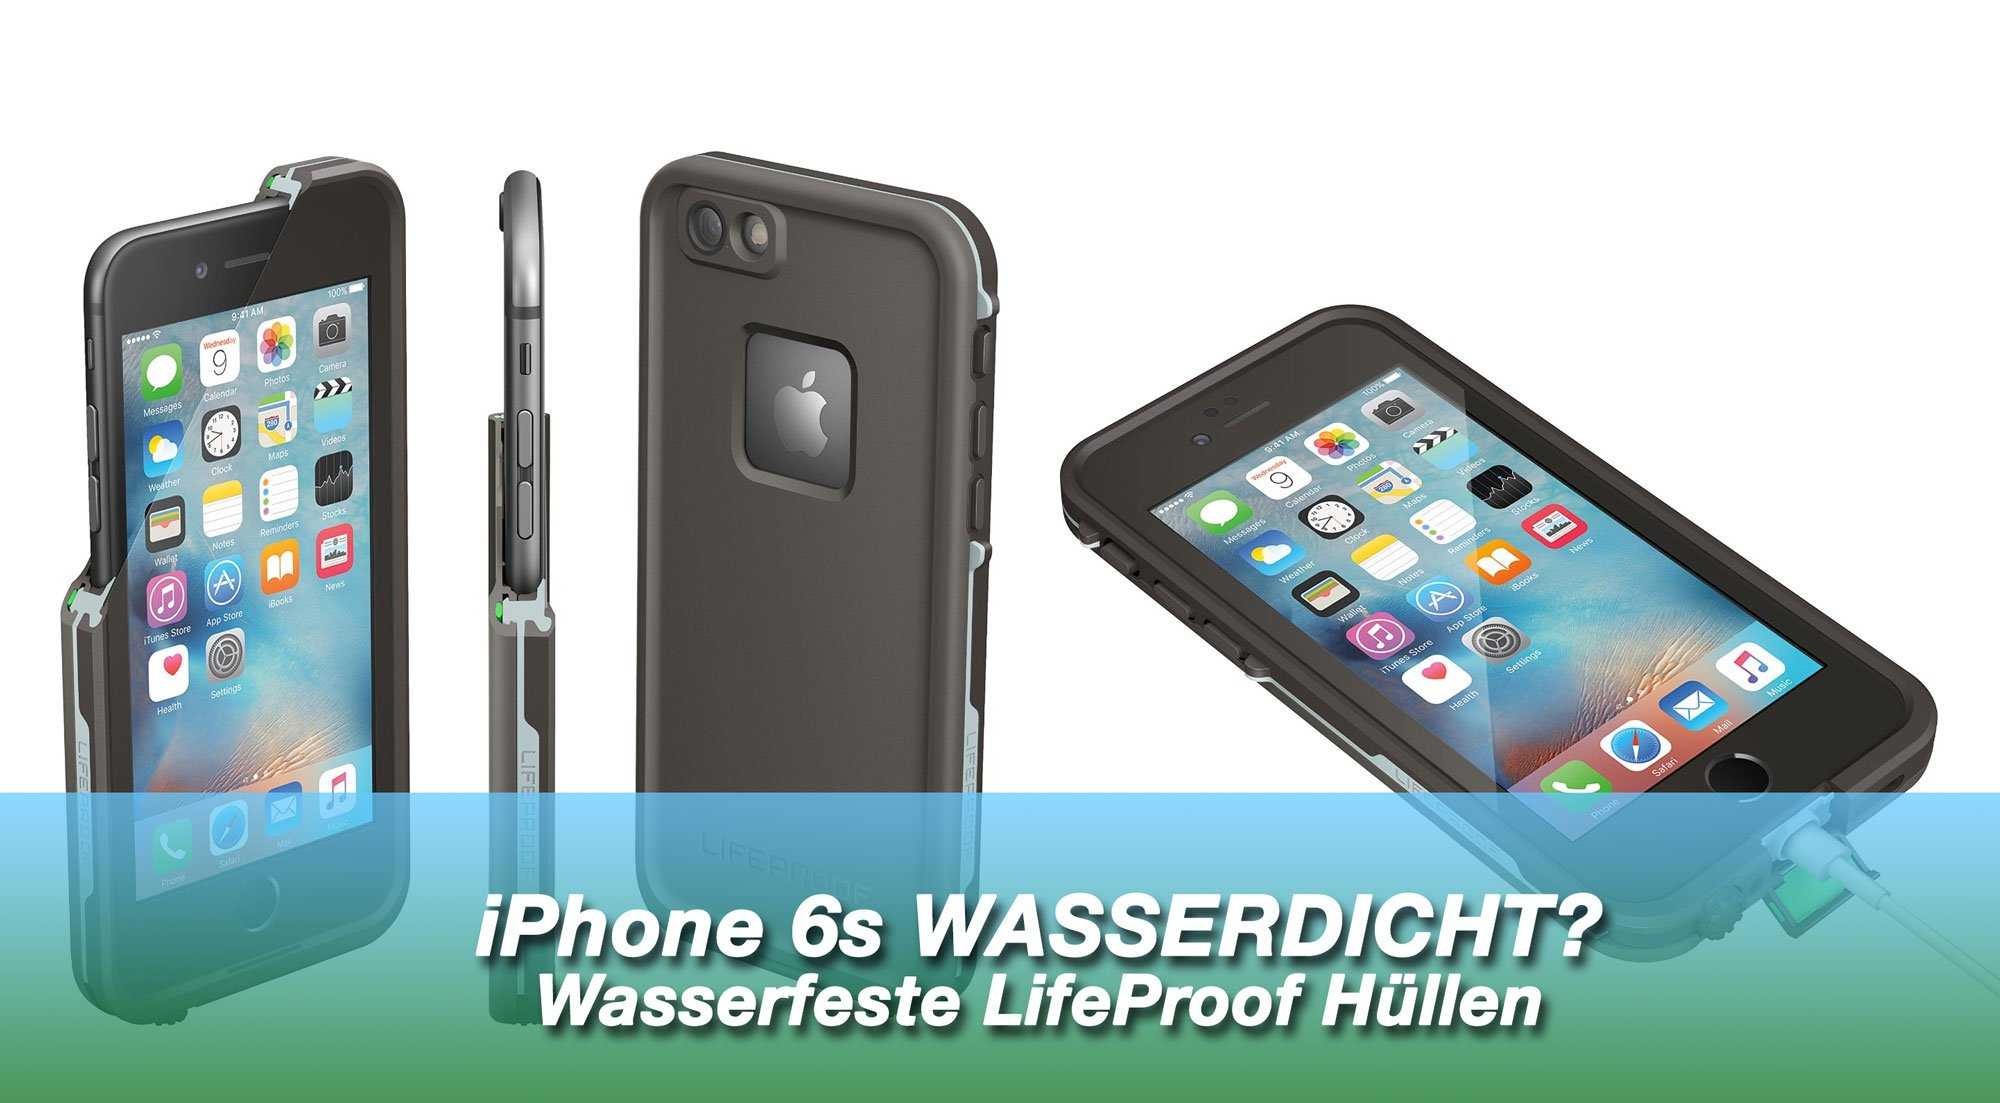 iphone 6s wasserdicht machen wasserfeste lifeproof iphone. Black Bedroom Furniture Sets. Home Design Ideas